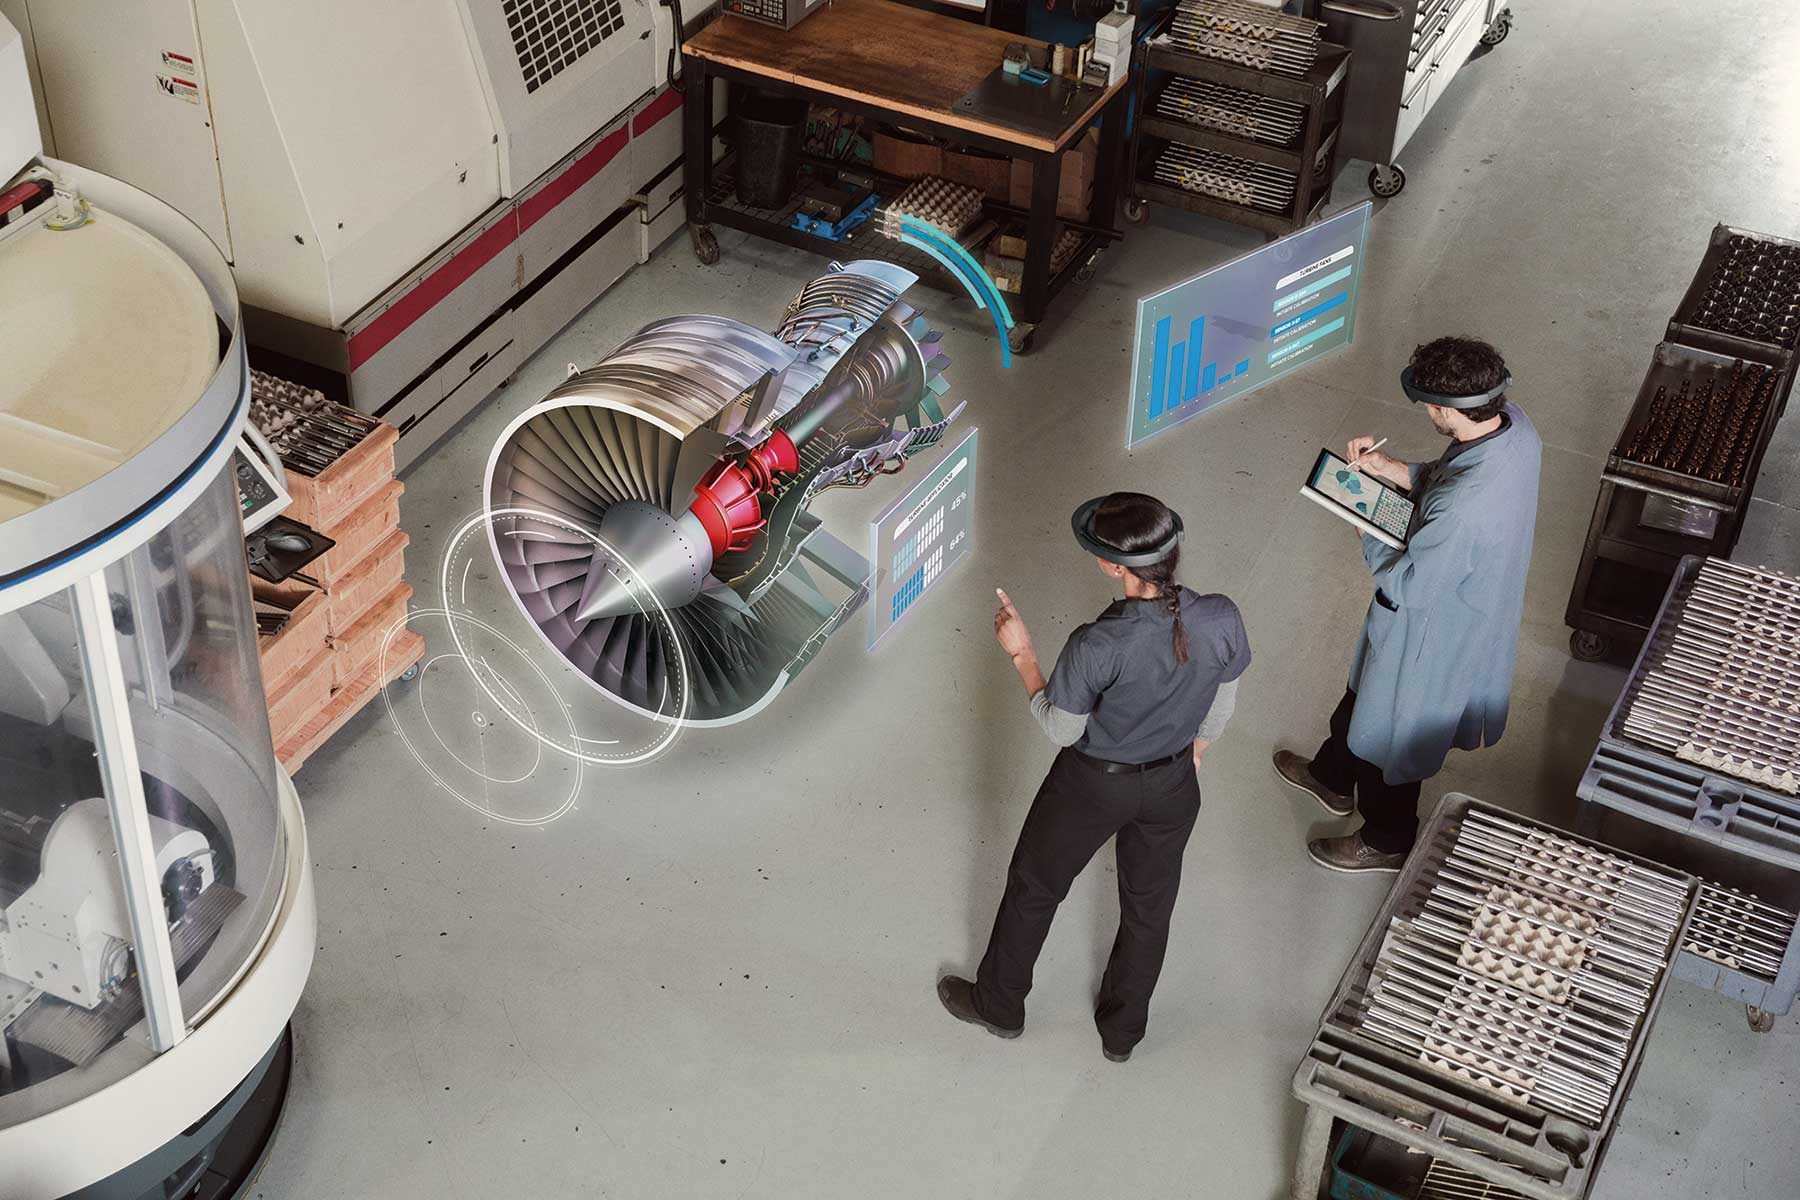 Engineers Using Microsoft HoloLens to Visualize a Jet Engine